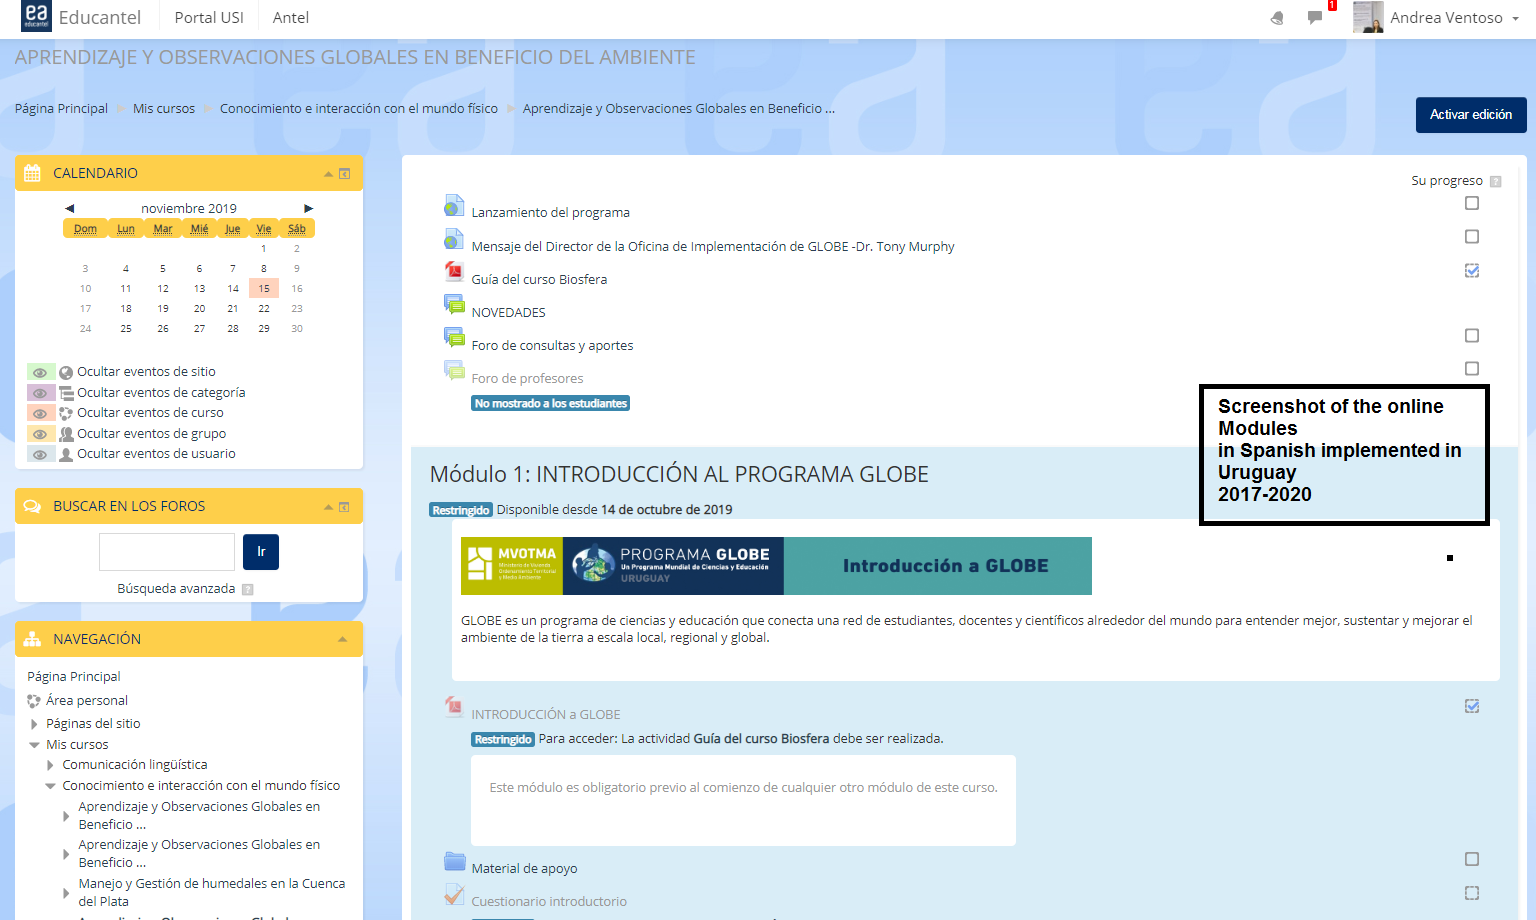 Screenshot of the online modules in Spanish, implemented in Uruguay, 2017-2020.